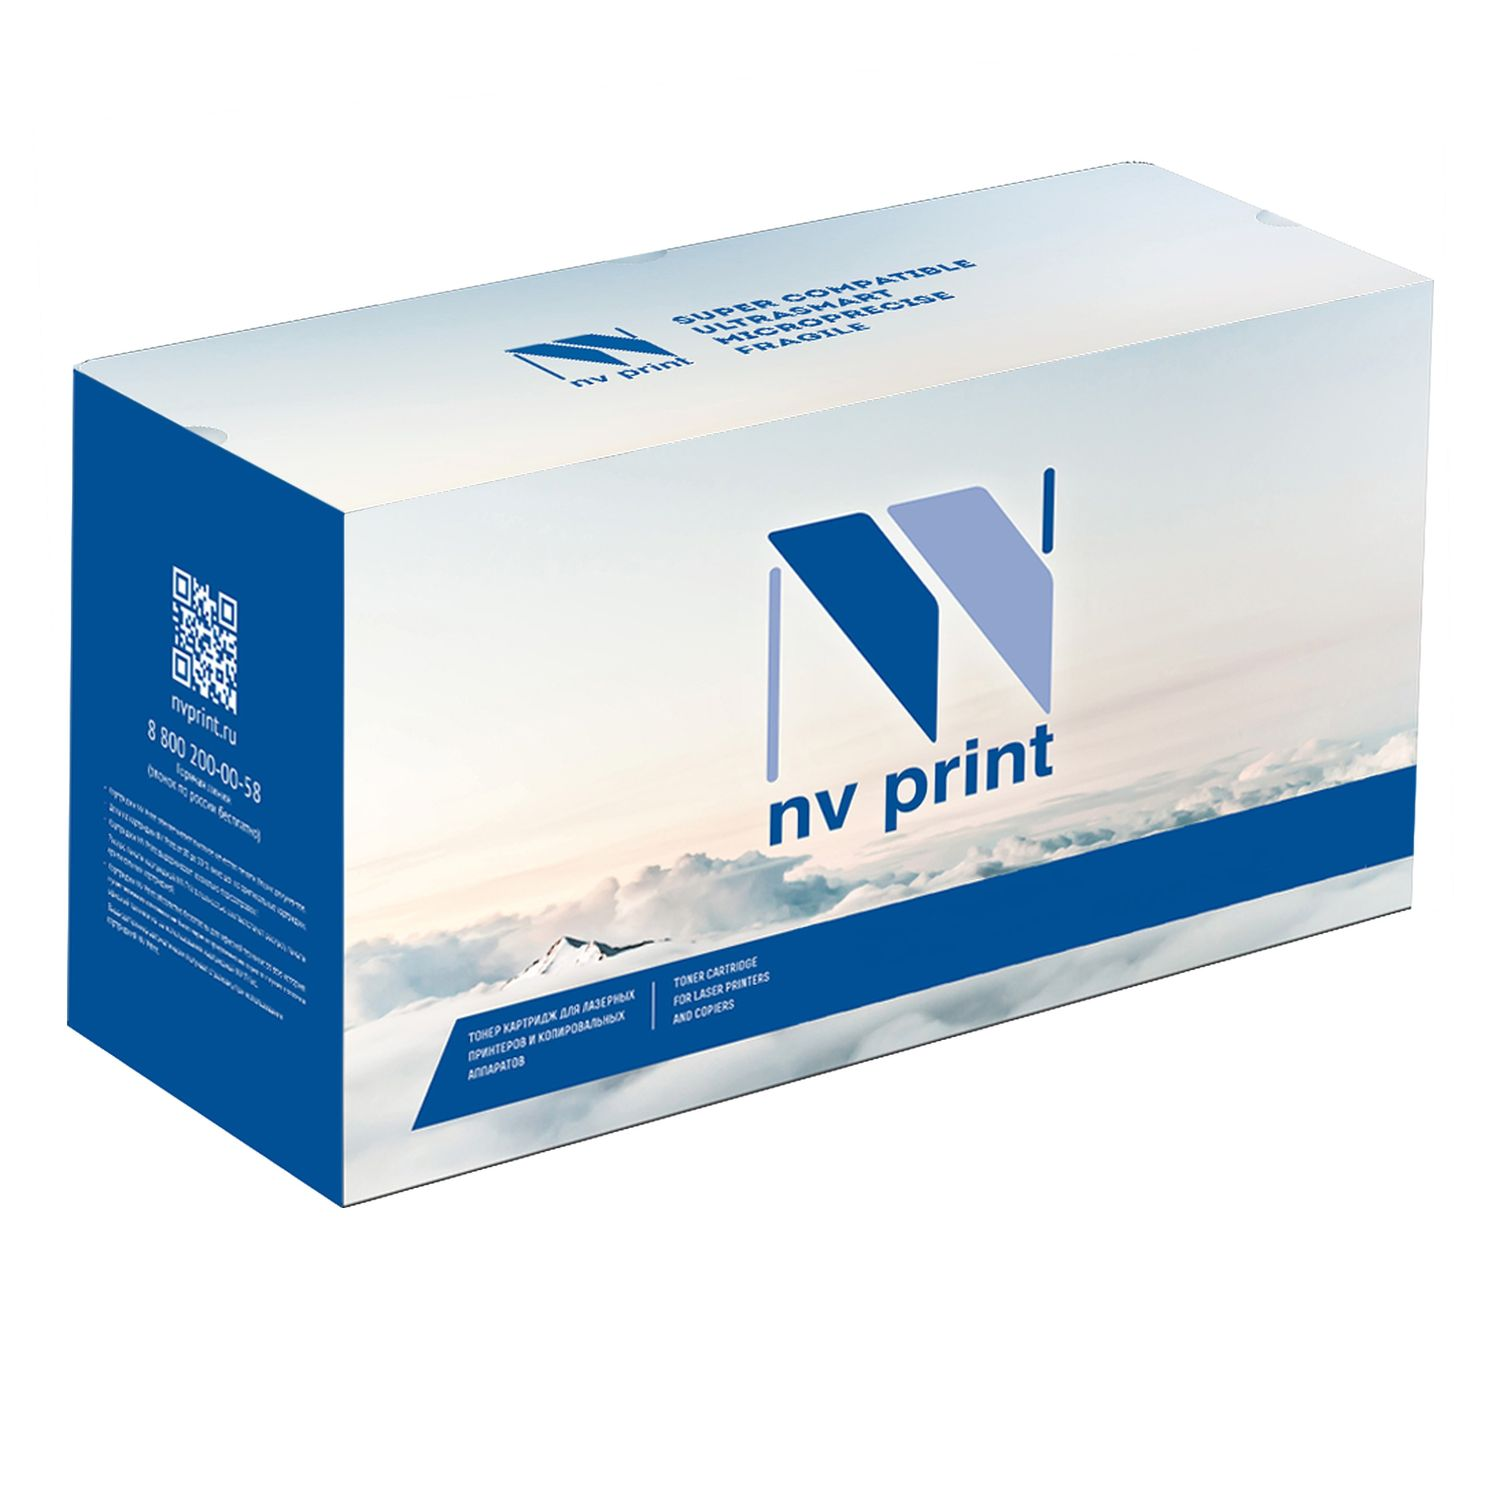 Картридж NV Print совместимый NV-SP3400HE для Ricoh Aficio-SP3400/SP3410/SP3500/SP3510 (5000k) картриджnvp совместимый nv mpc3503 yellow для ricoh aficio mpc3003 mpc3004 mpc3503 mpc3504 18000k